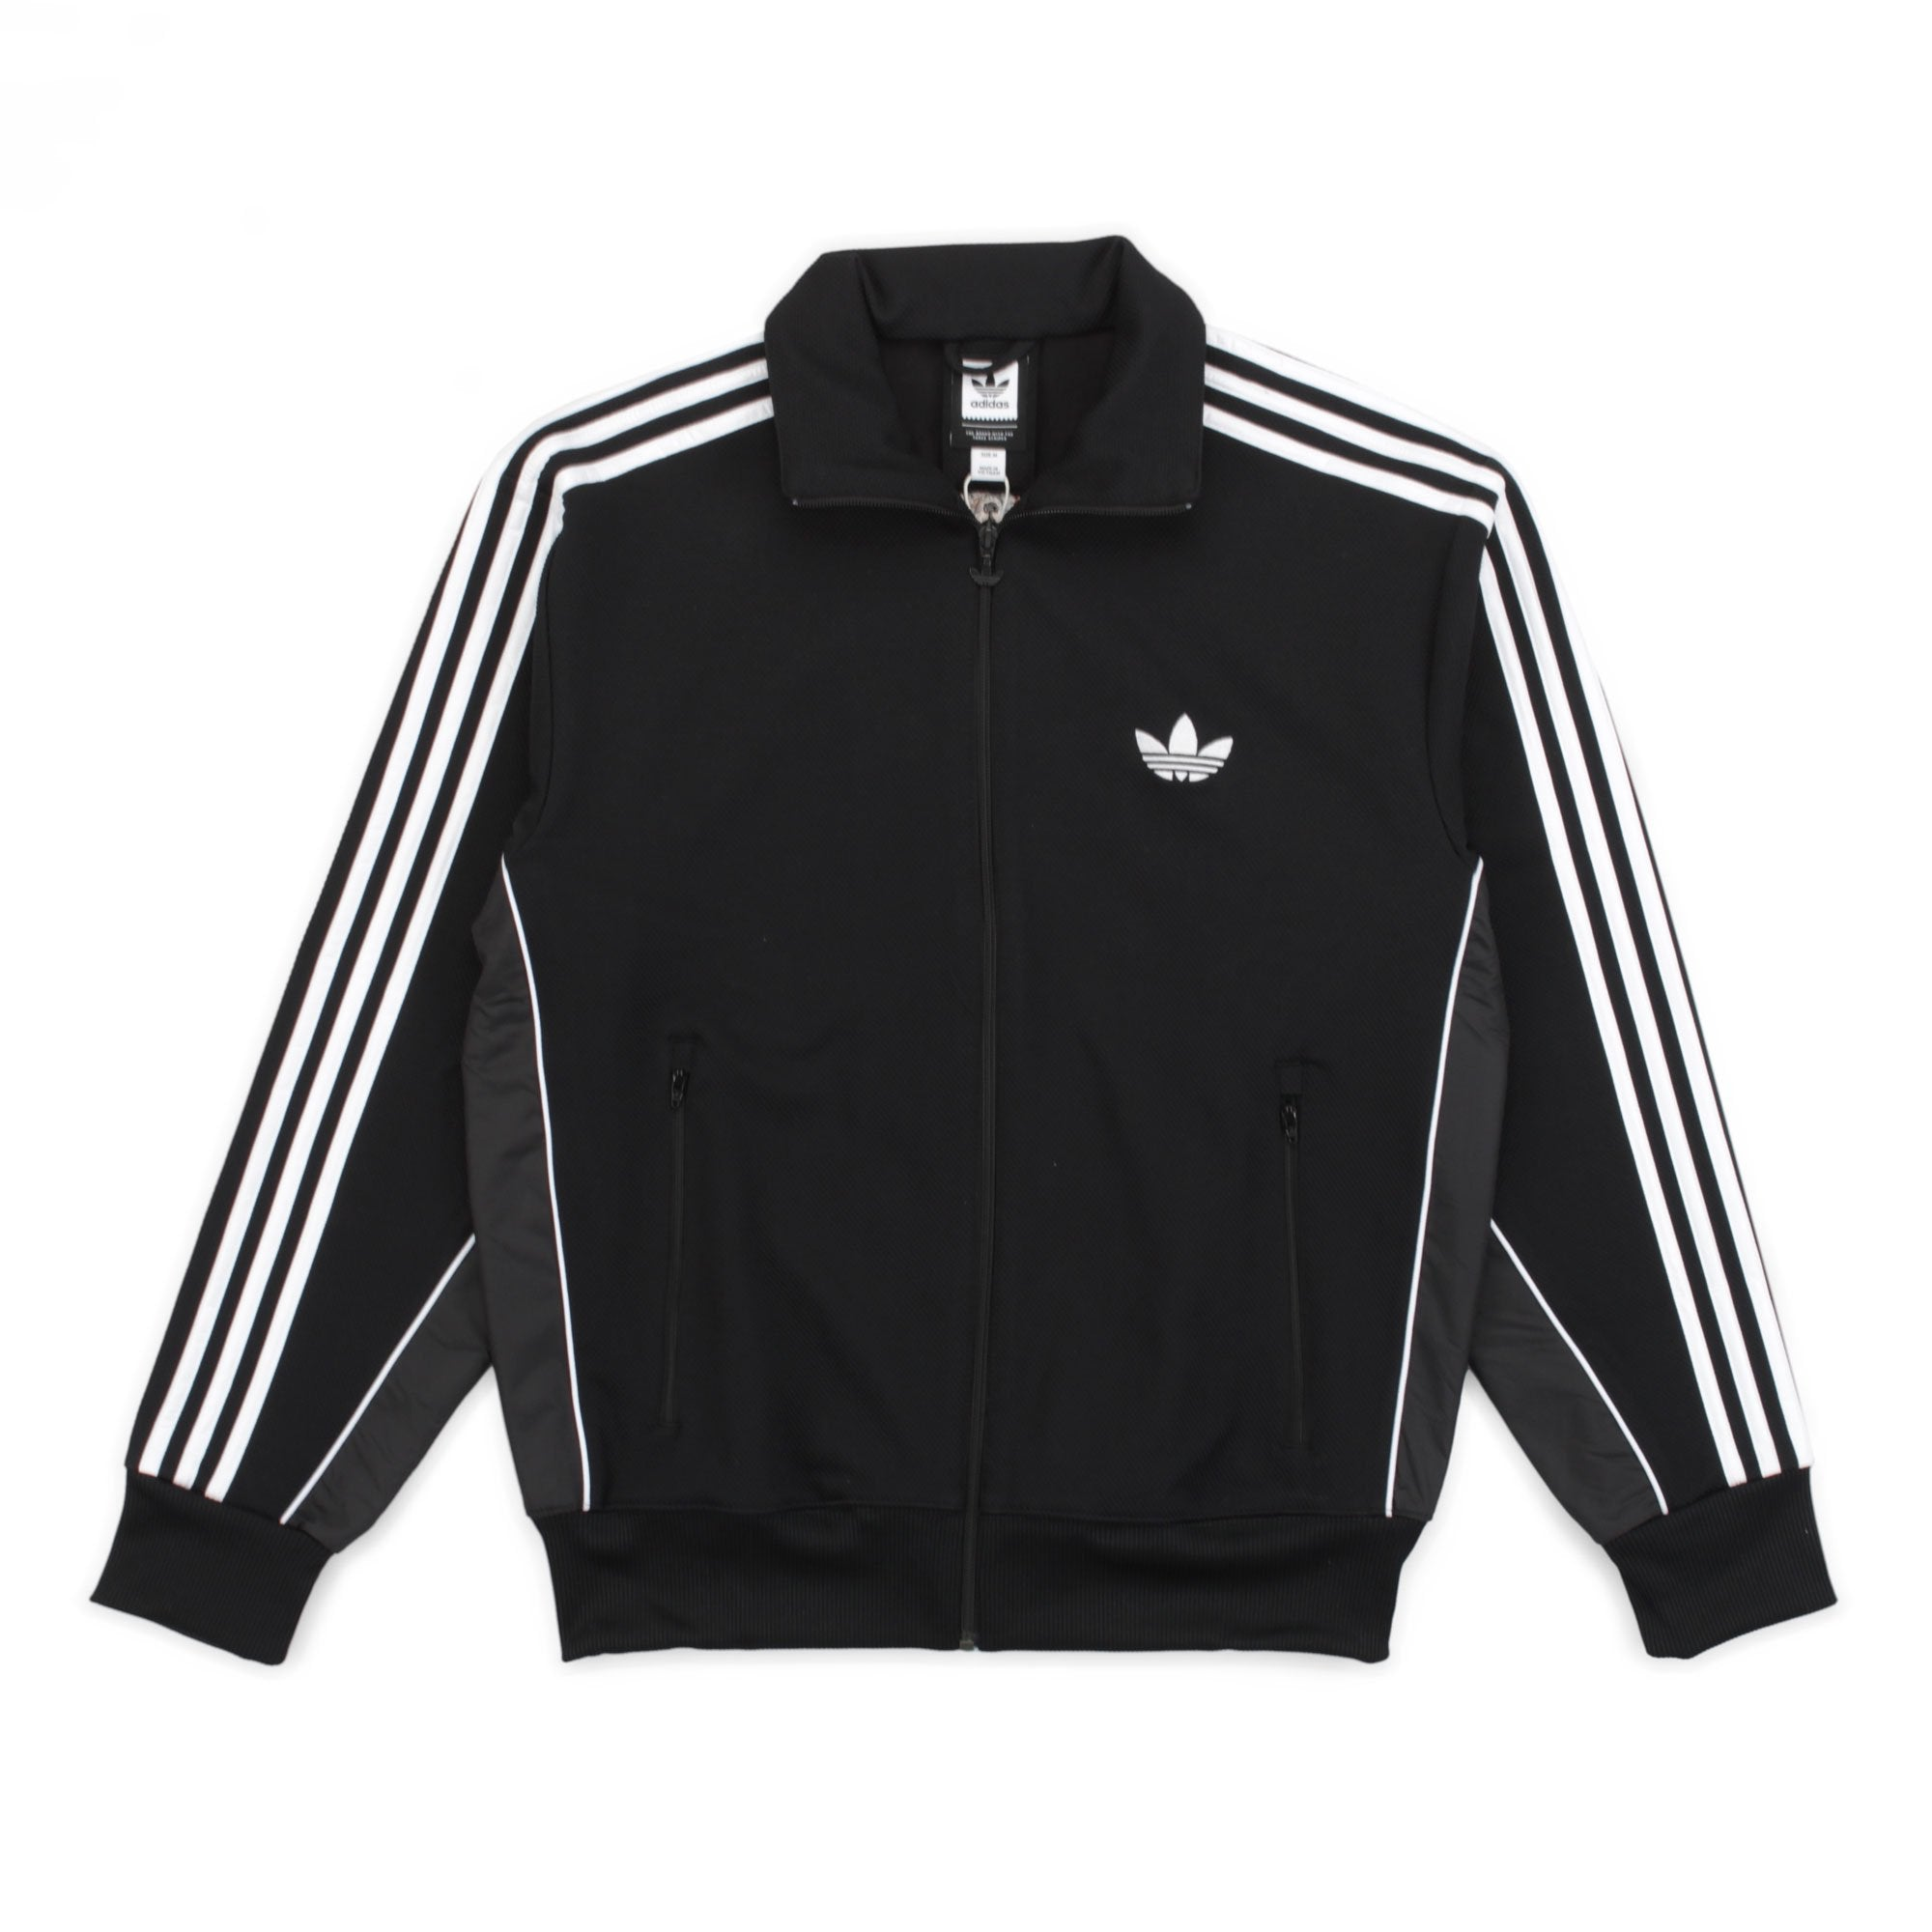 ADIDAS TJ FIREBIRD JACKET